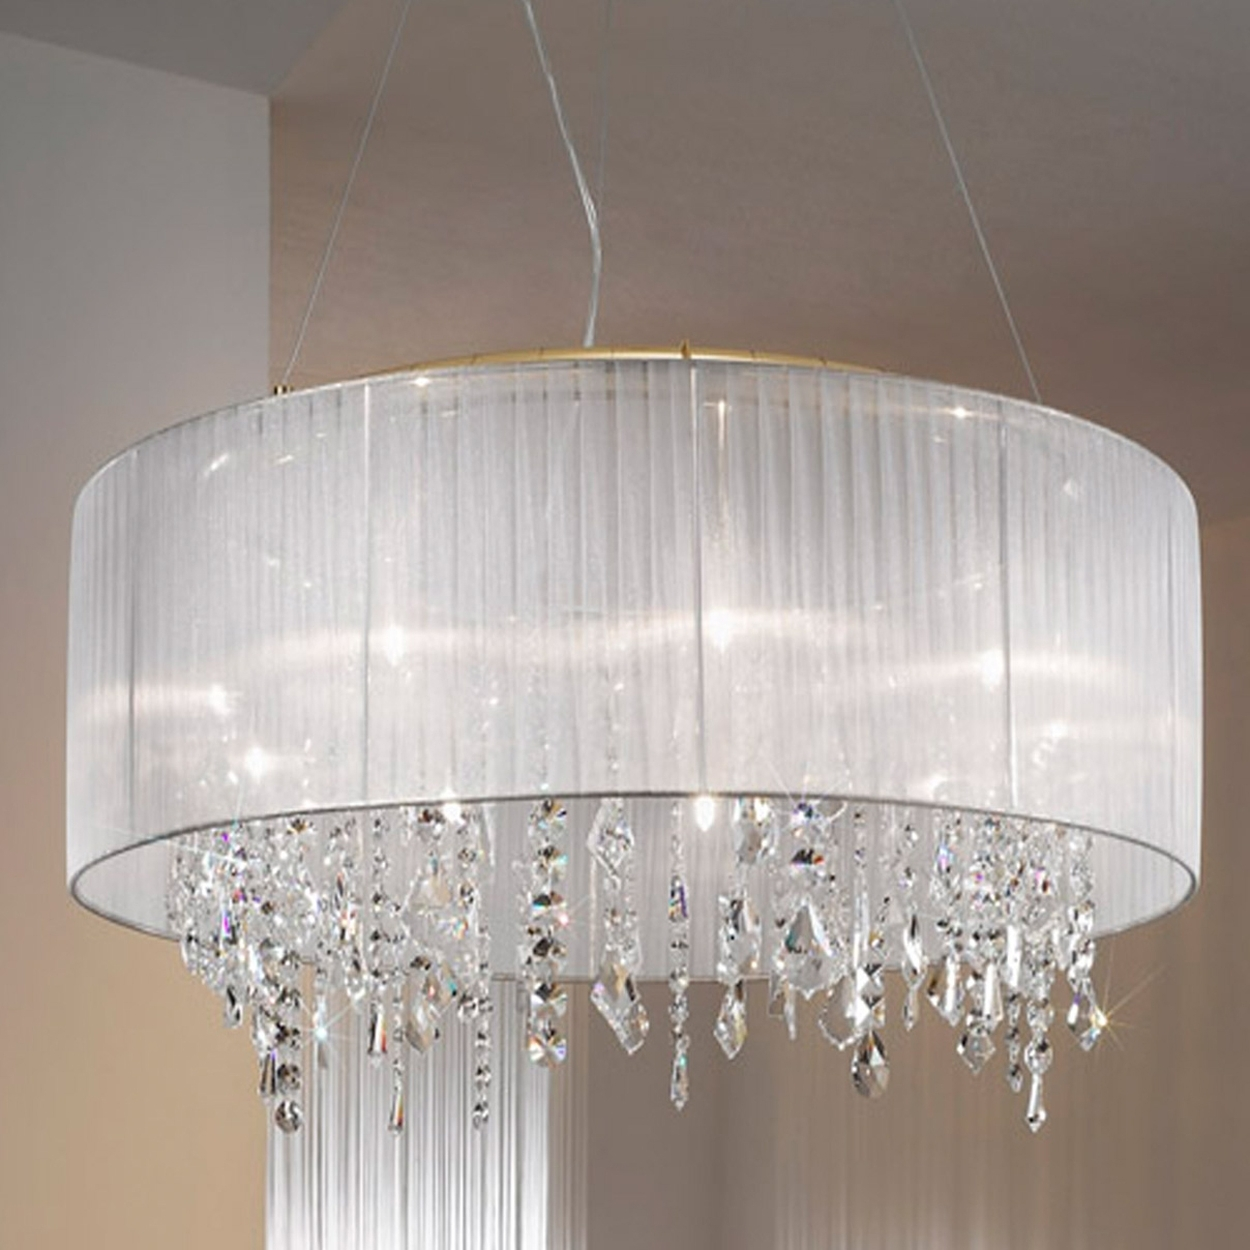 Chandelier Light Shades Intended For Best And Newest Chandelier Lamp Shades With Crystals : Furniture Decor Trend – Best (View 10 of 15)